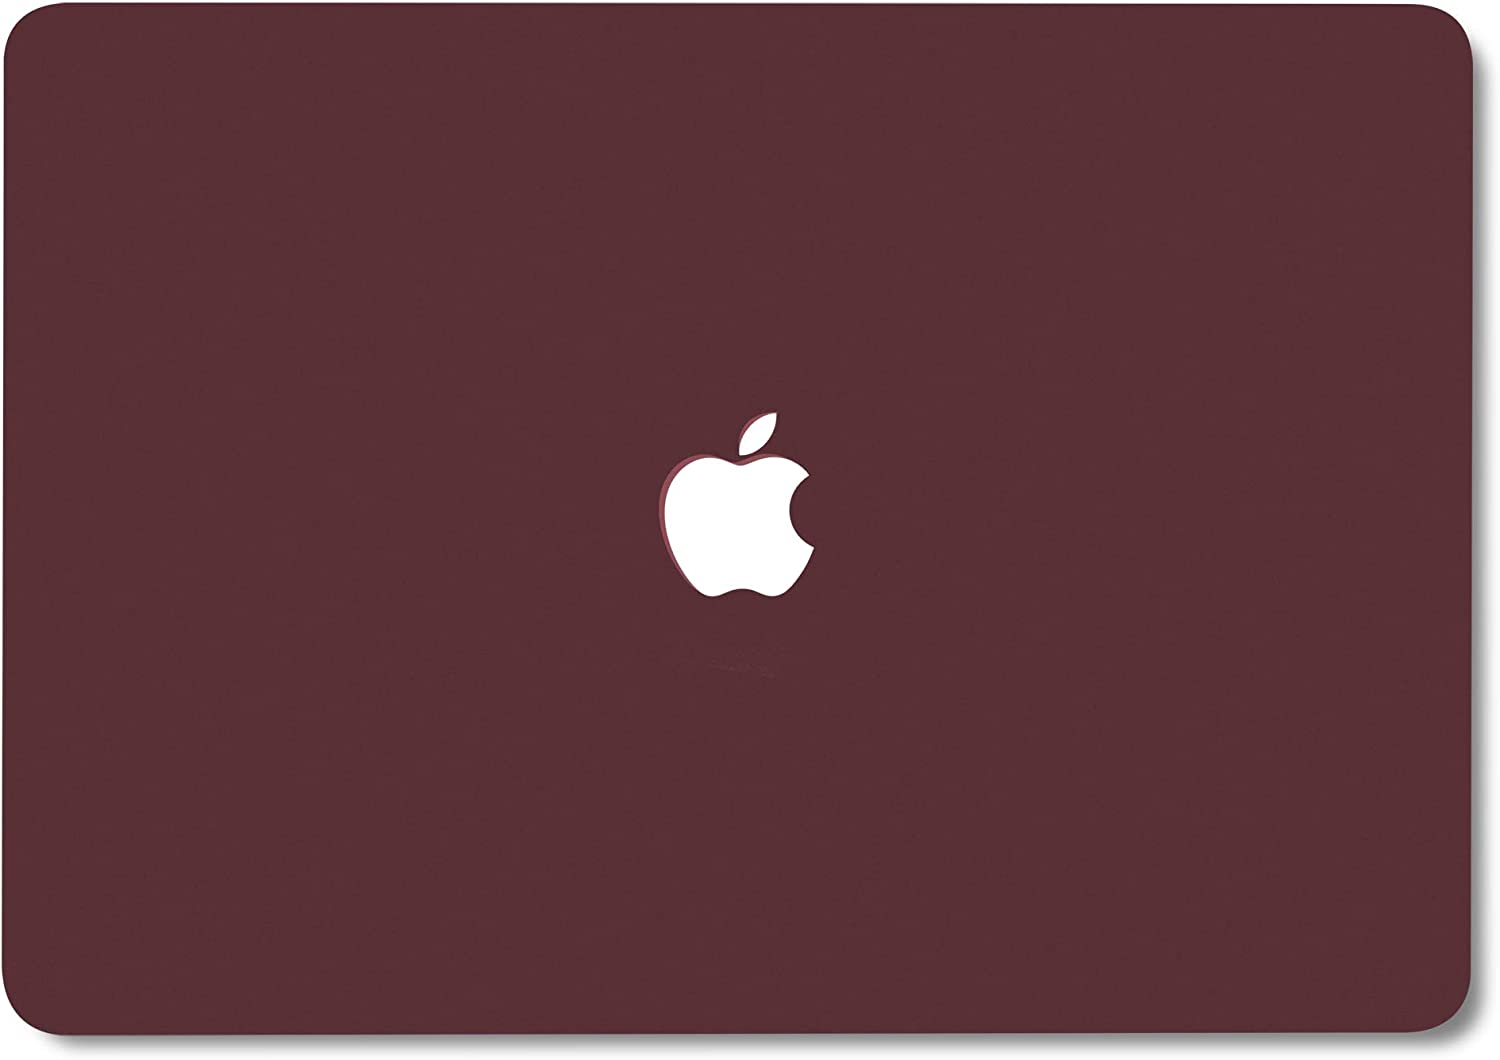 Anti Dust Plugs Logo Cutout Hard Shell Privacy Webcam Cover Slide GMYLE MacBook Pro 13 Inch Case 2018 2017 2016 Release A1989 A1708 A1706 with Touch Bar Keyboard Cover Screen Protector Burgundy